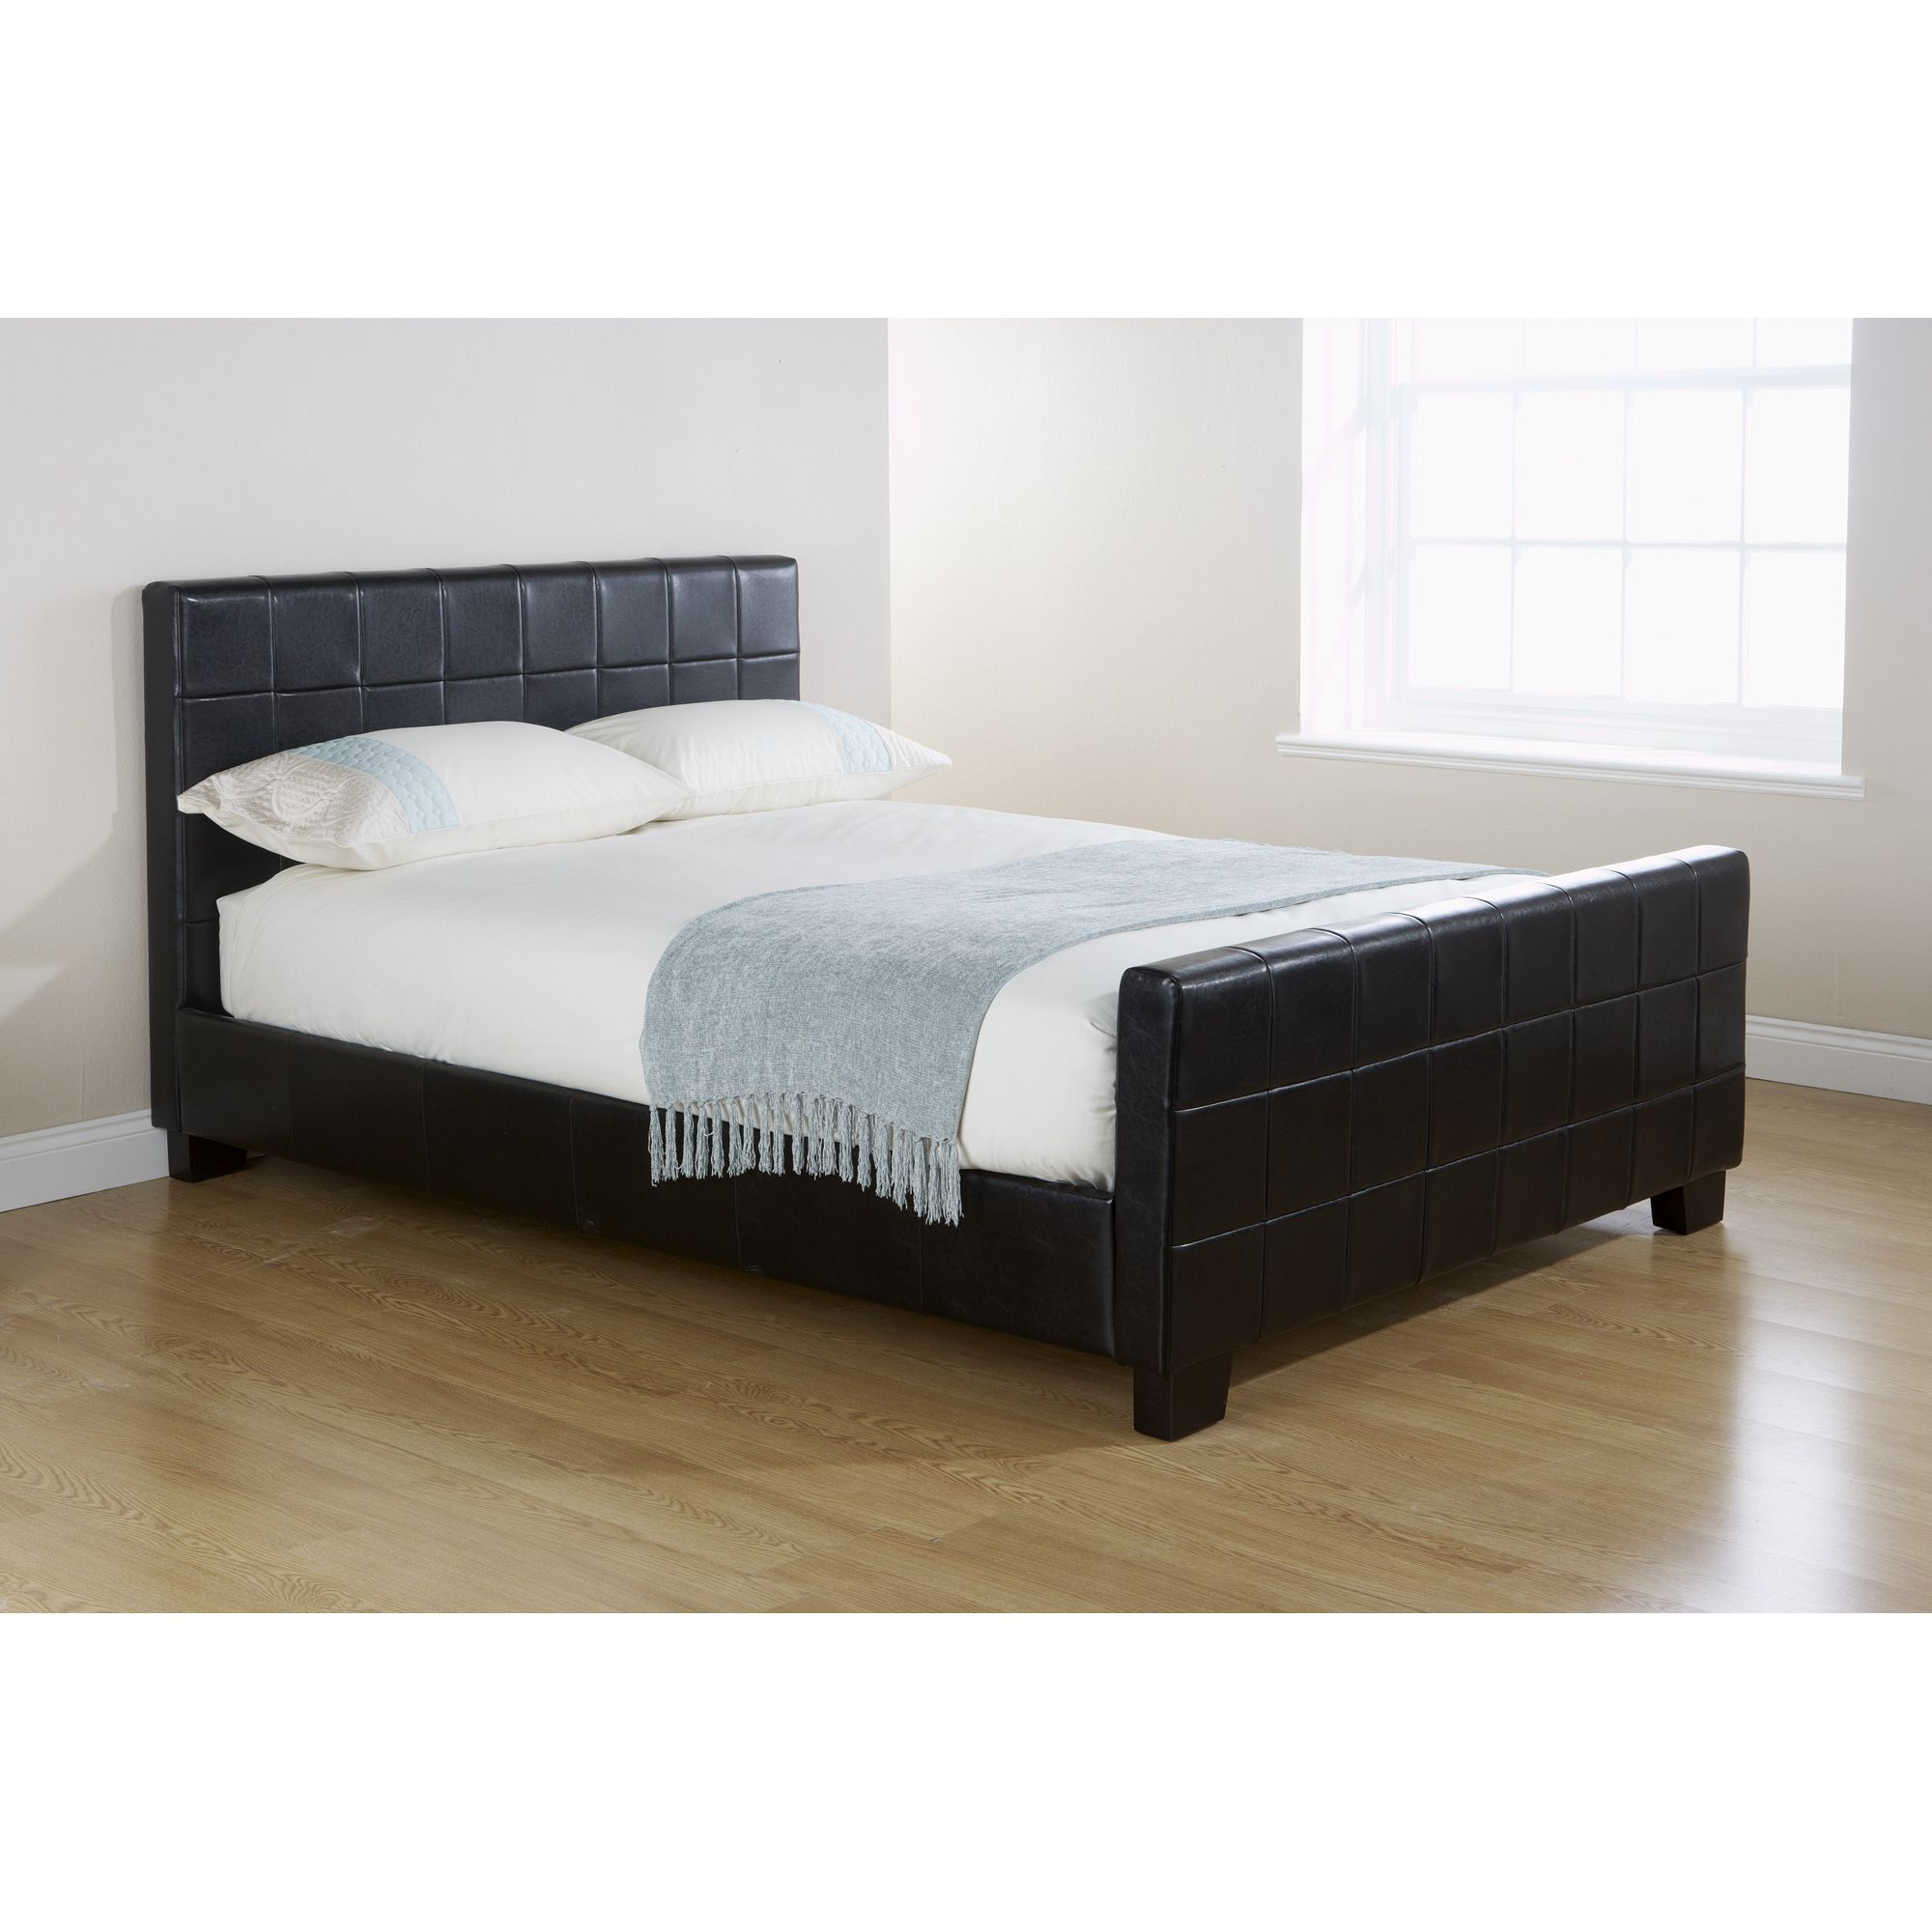 Elements Mayfair Button Bed - Double - Black at Tesco Direct